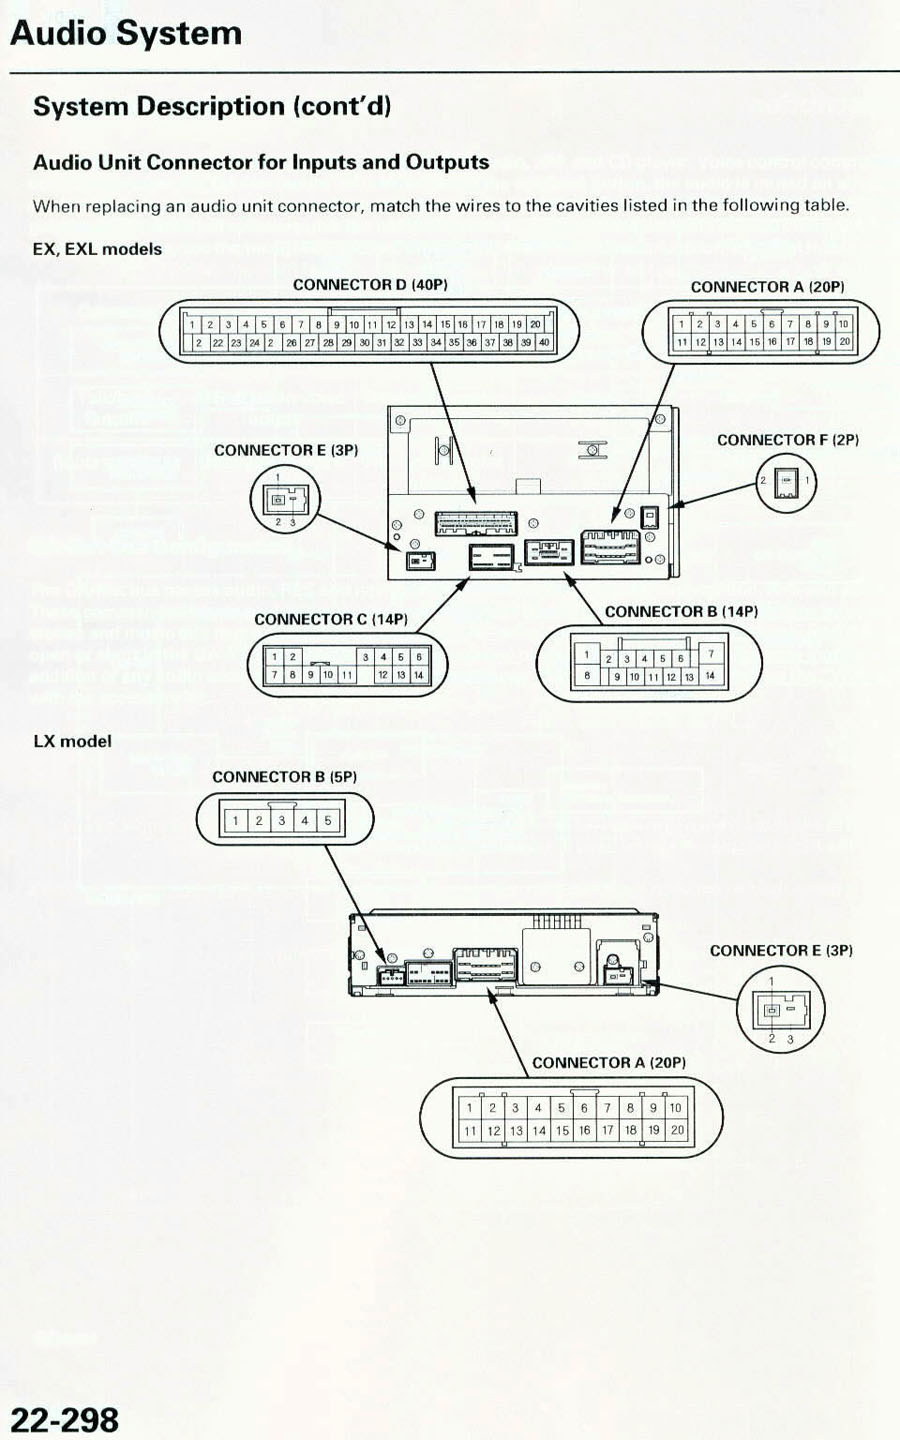 32969d1200063279 re factory subwoofer aftermarket hu audio_connector 2006 re factory subwoofer and aftermarket hu honda pilot honda honda pilot 2004 stereo wiring diagram at gsmx.co